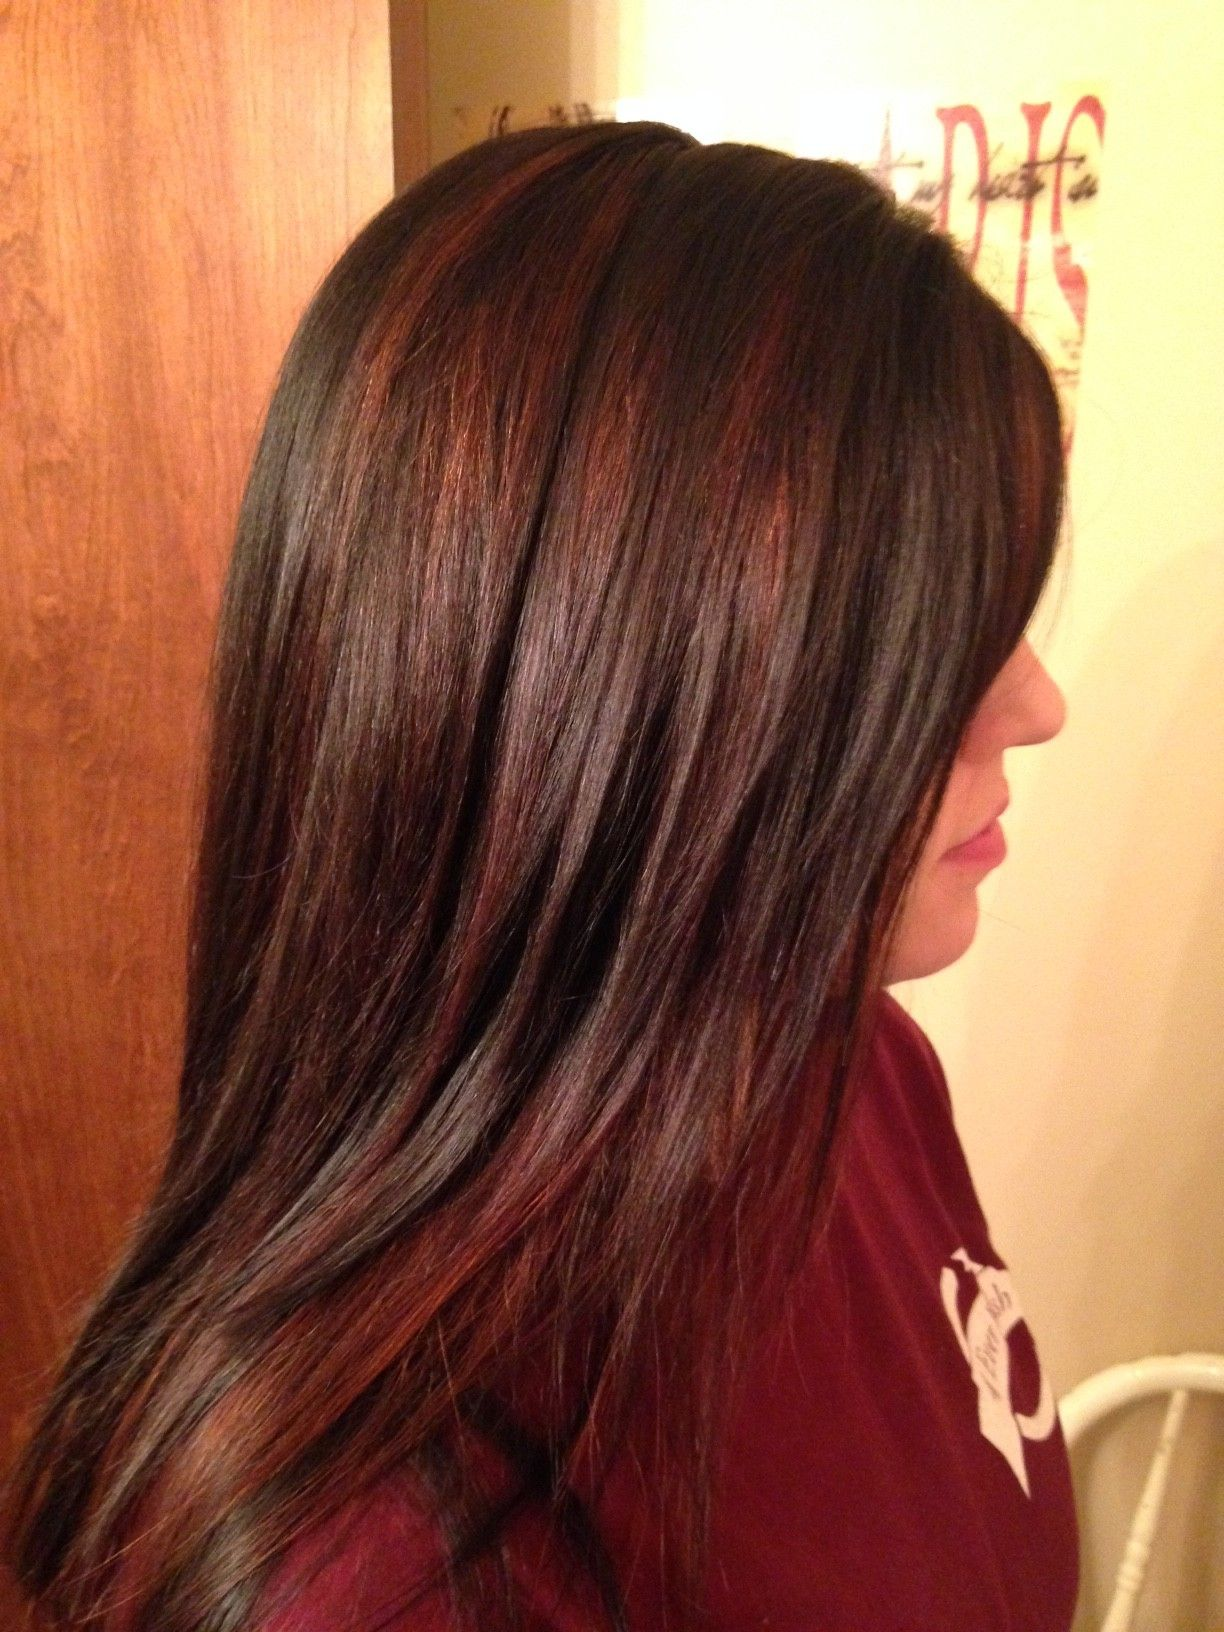 Chocolate brown with red highlights love hairstyles pinterest